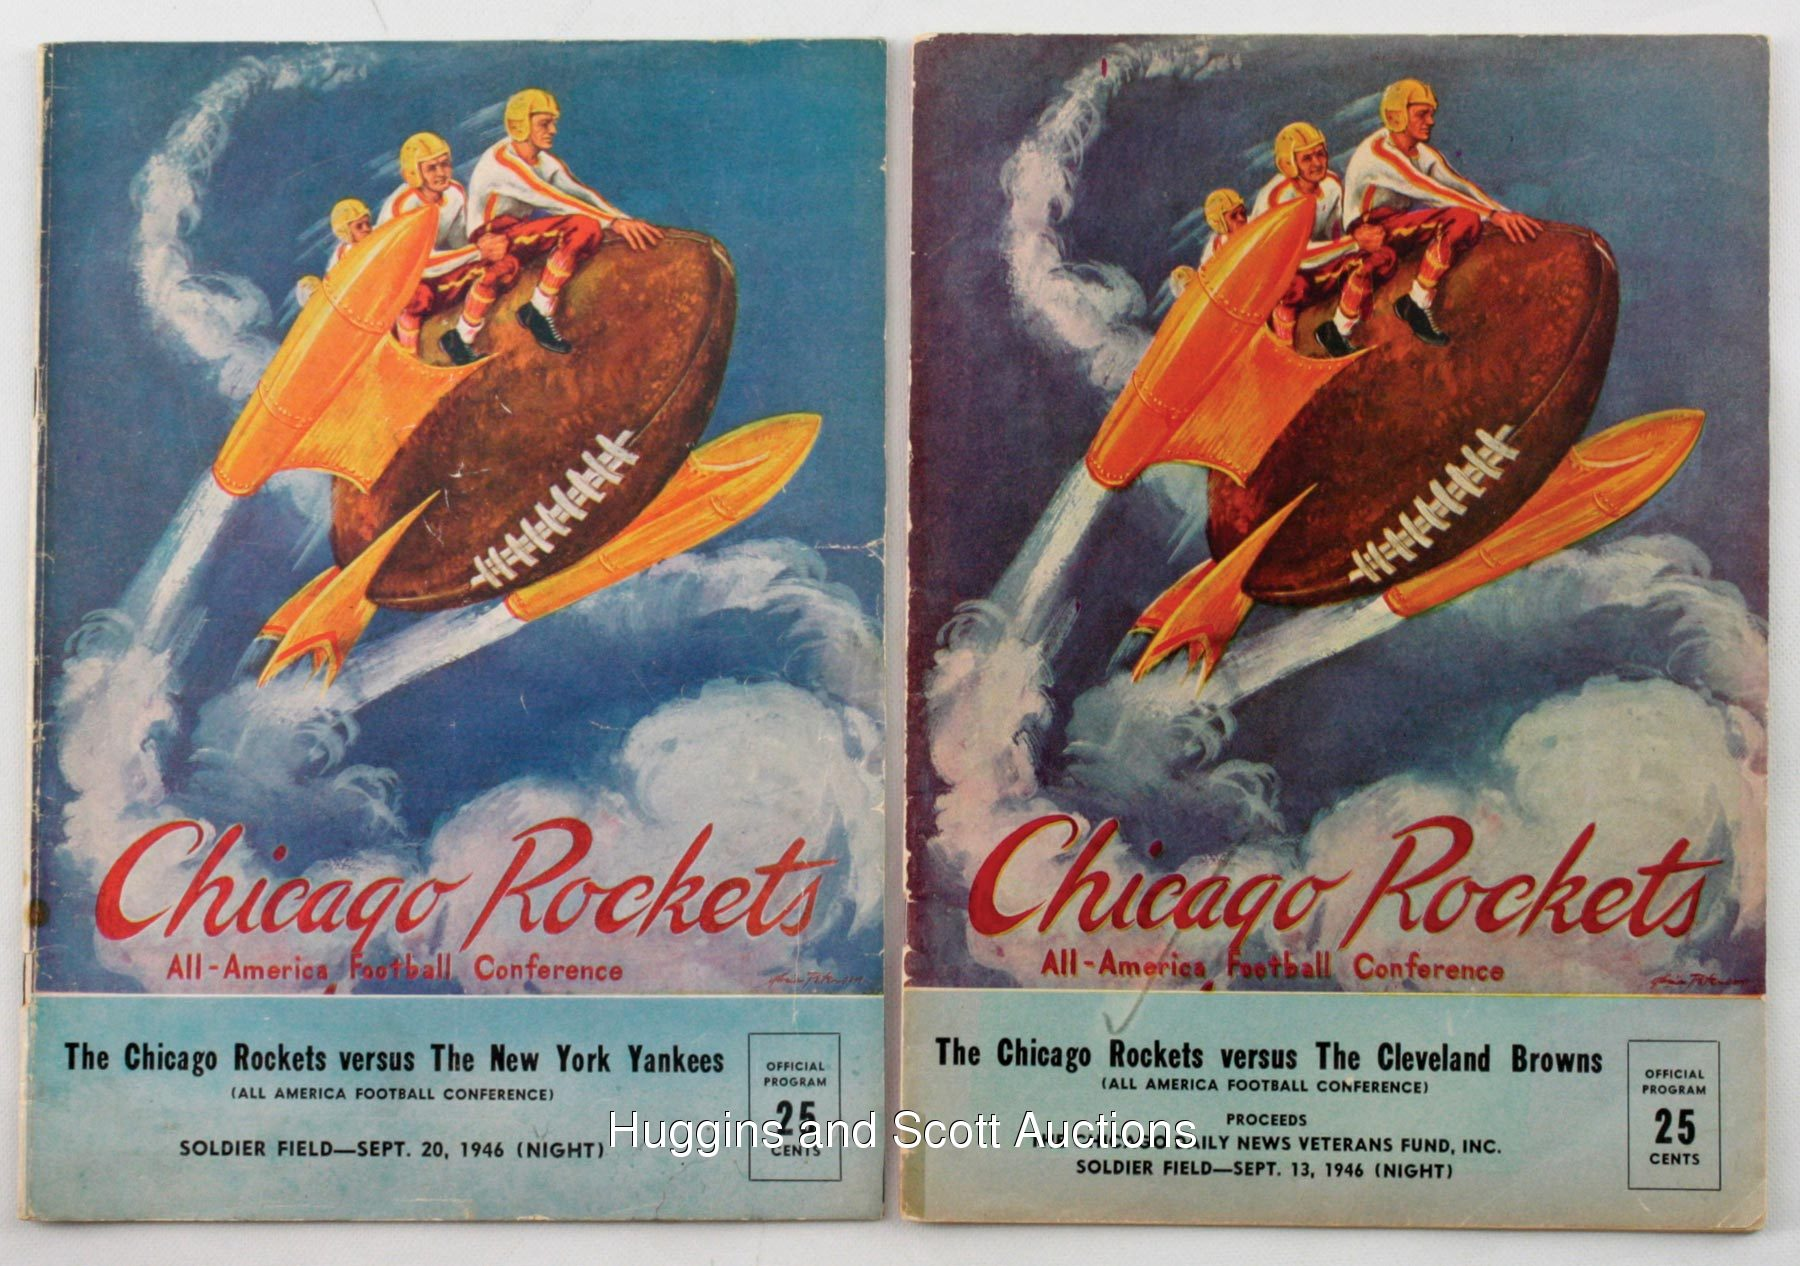 21245_chicago_rockets.jpg